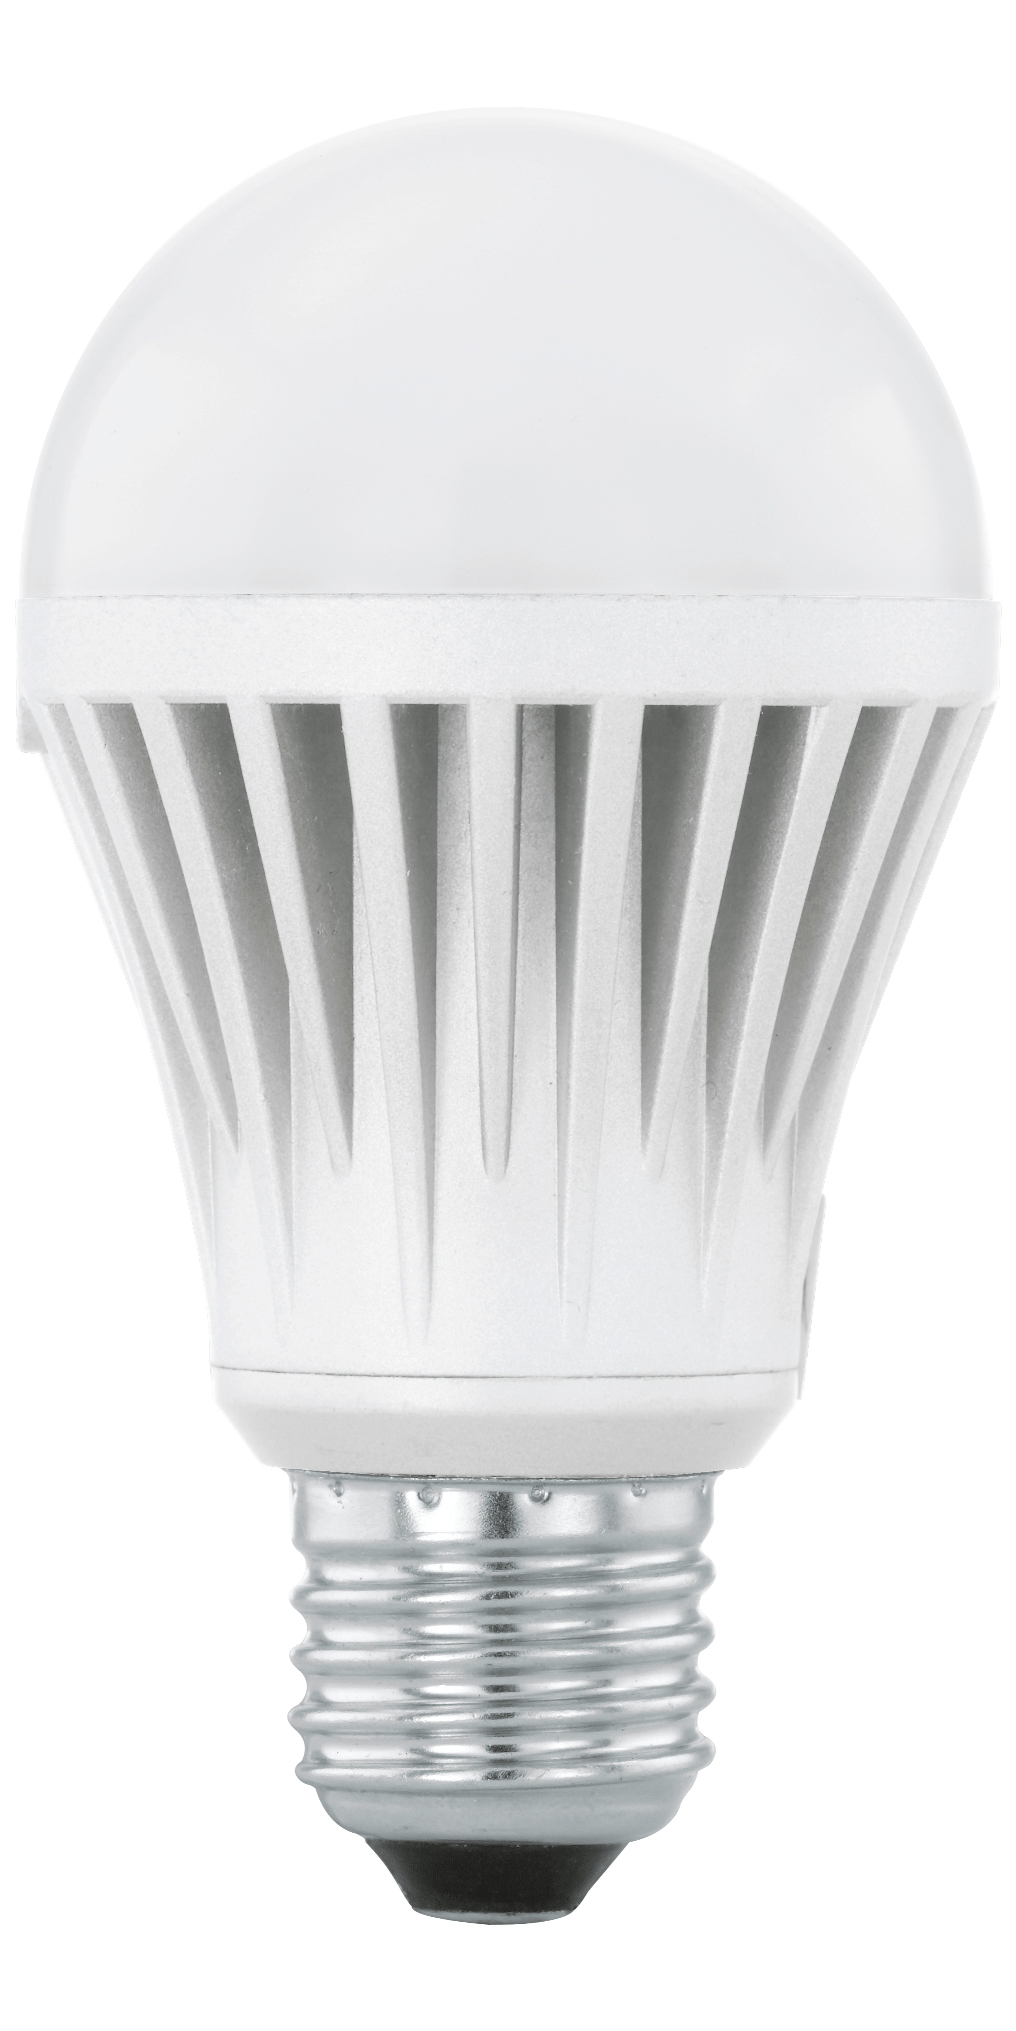 LED sijalica 12W - 11436